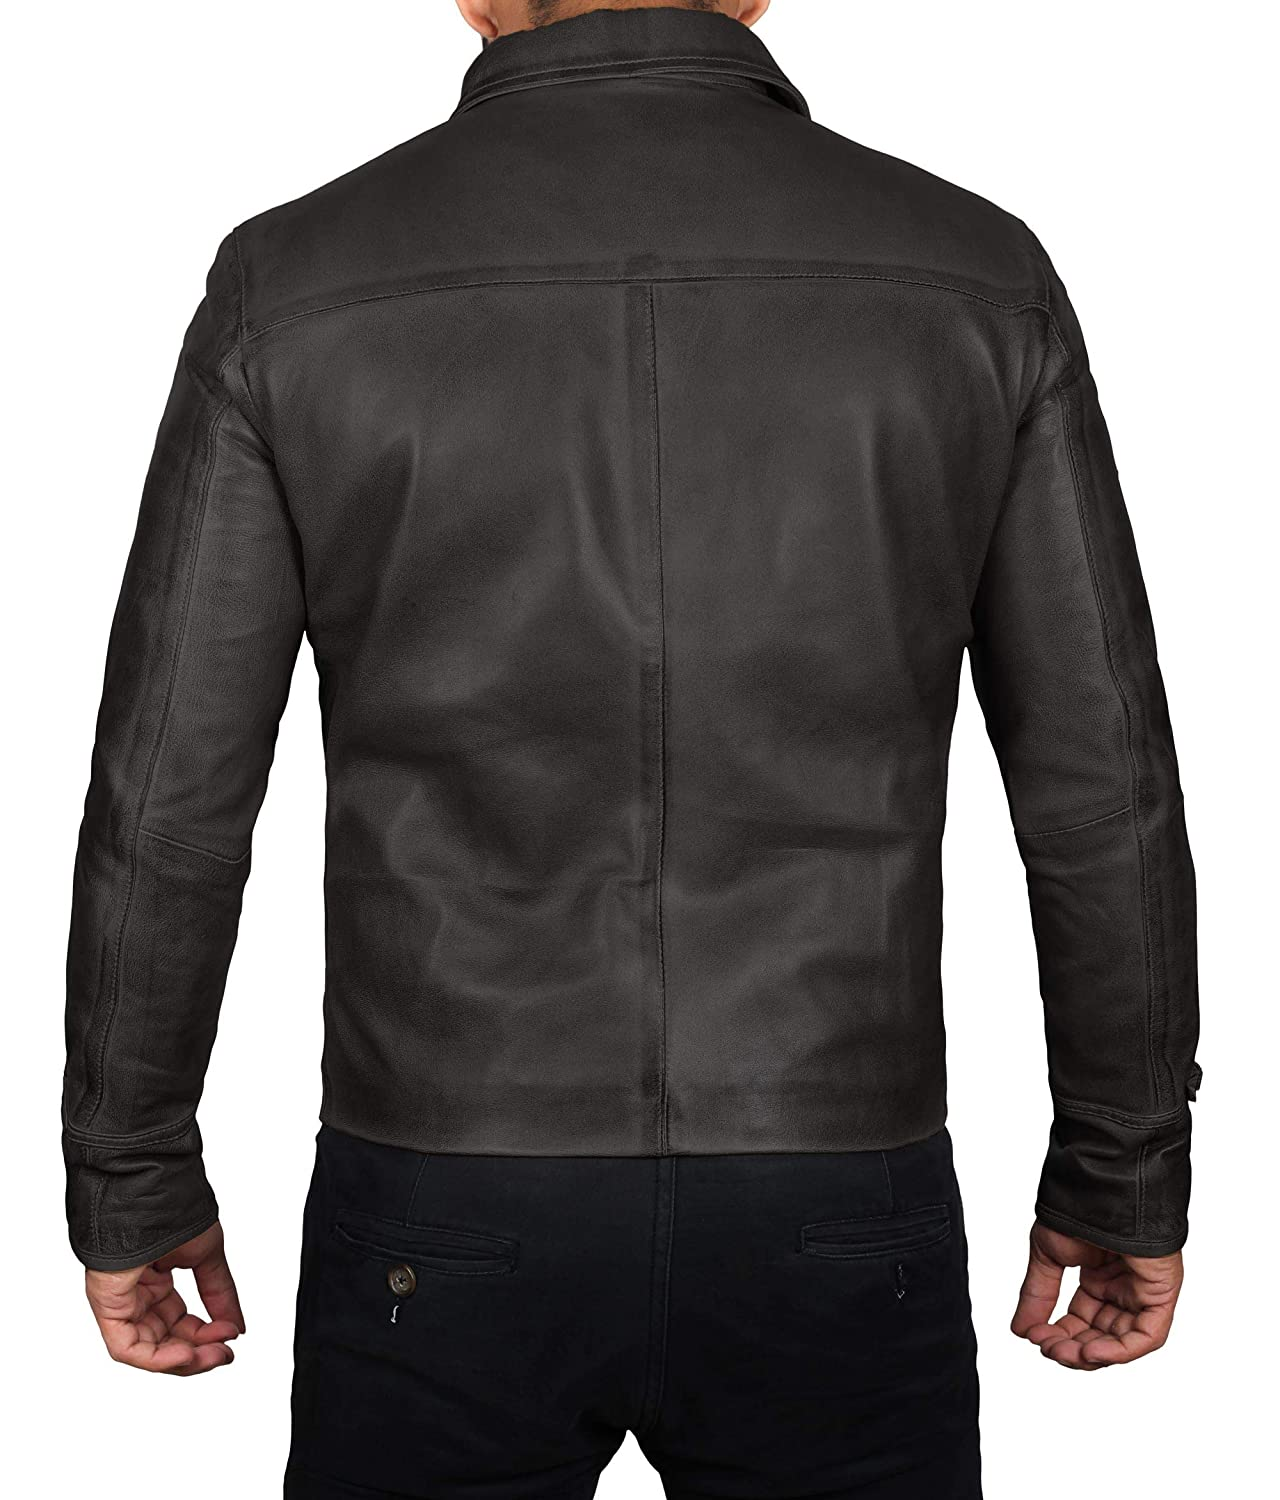 Leather Jacket for Men - Genuine Lambskin Mens Leather Jackets